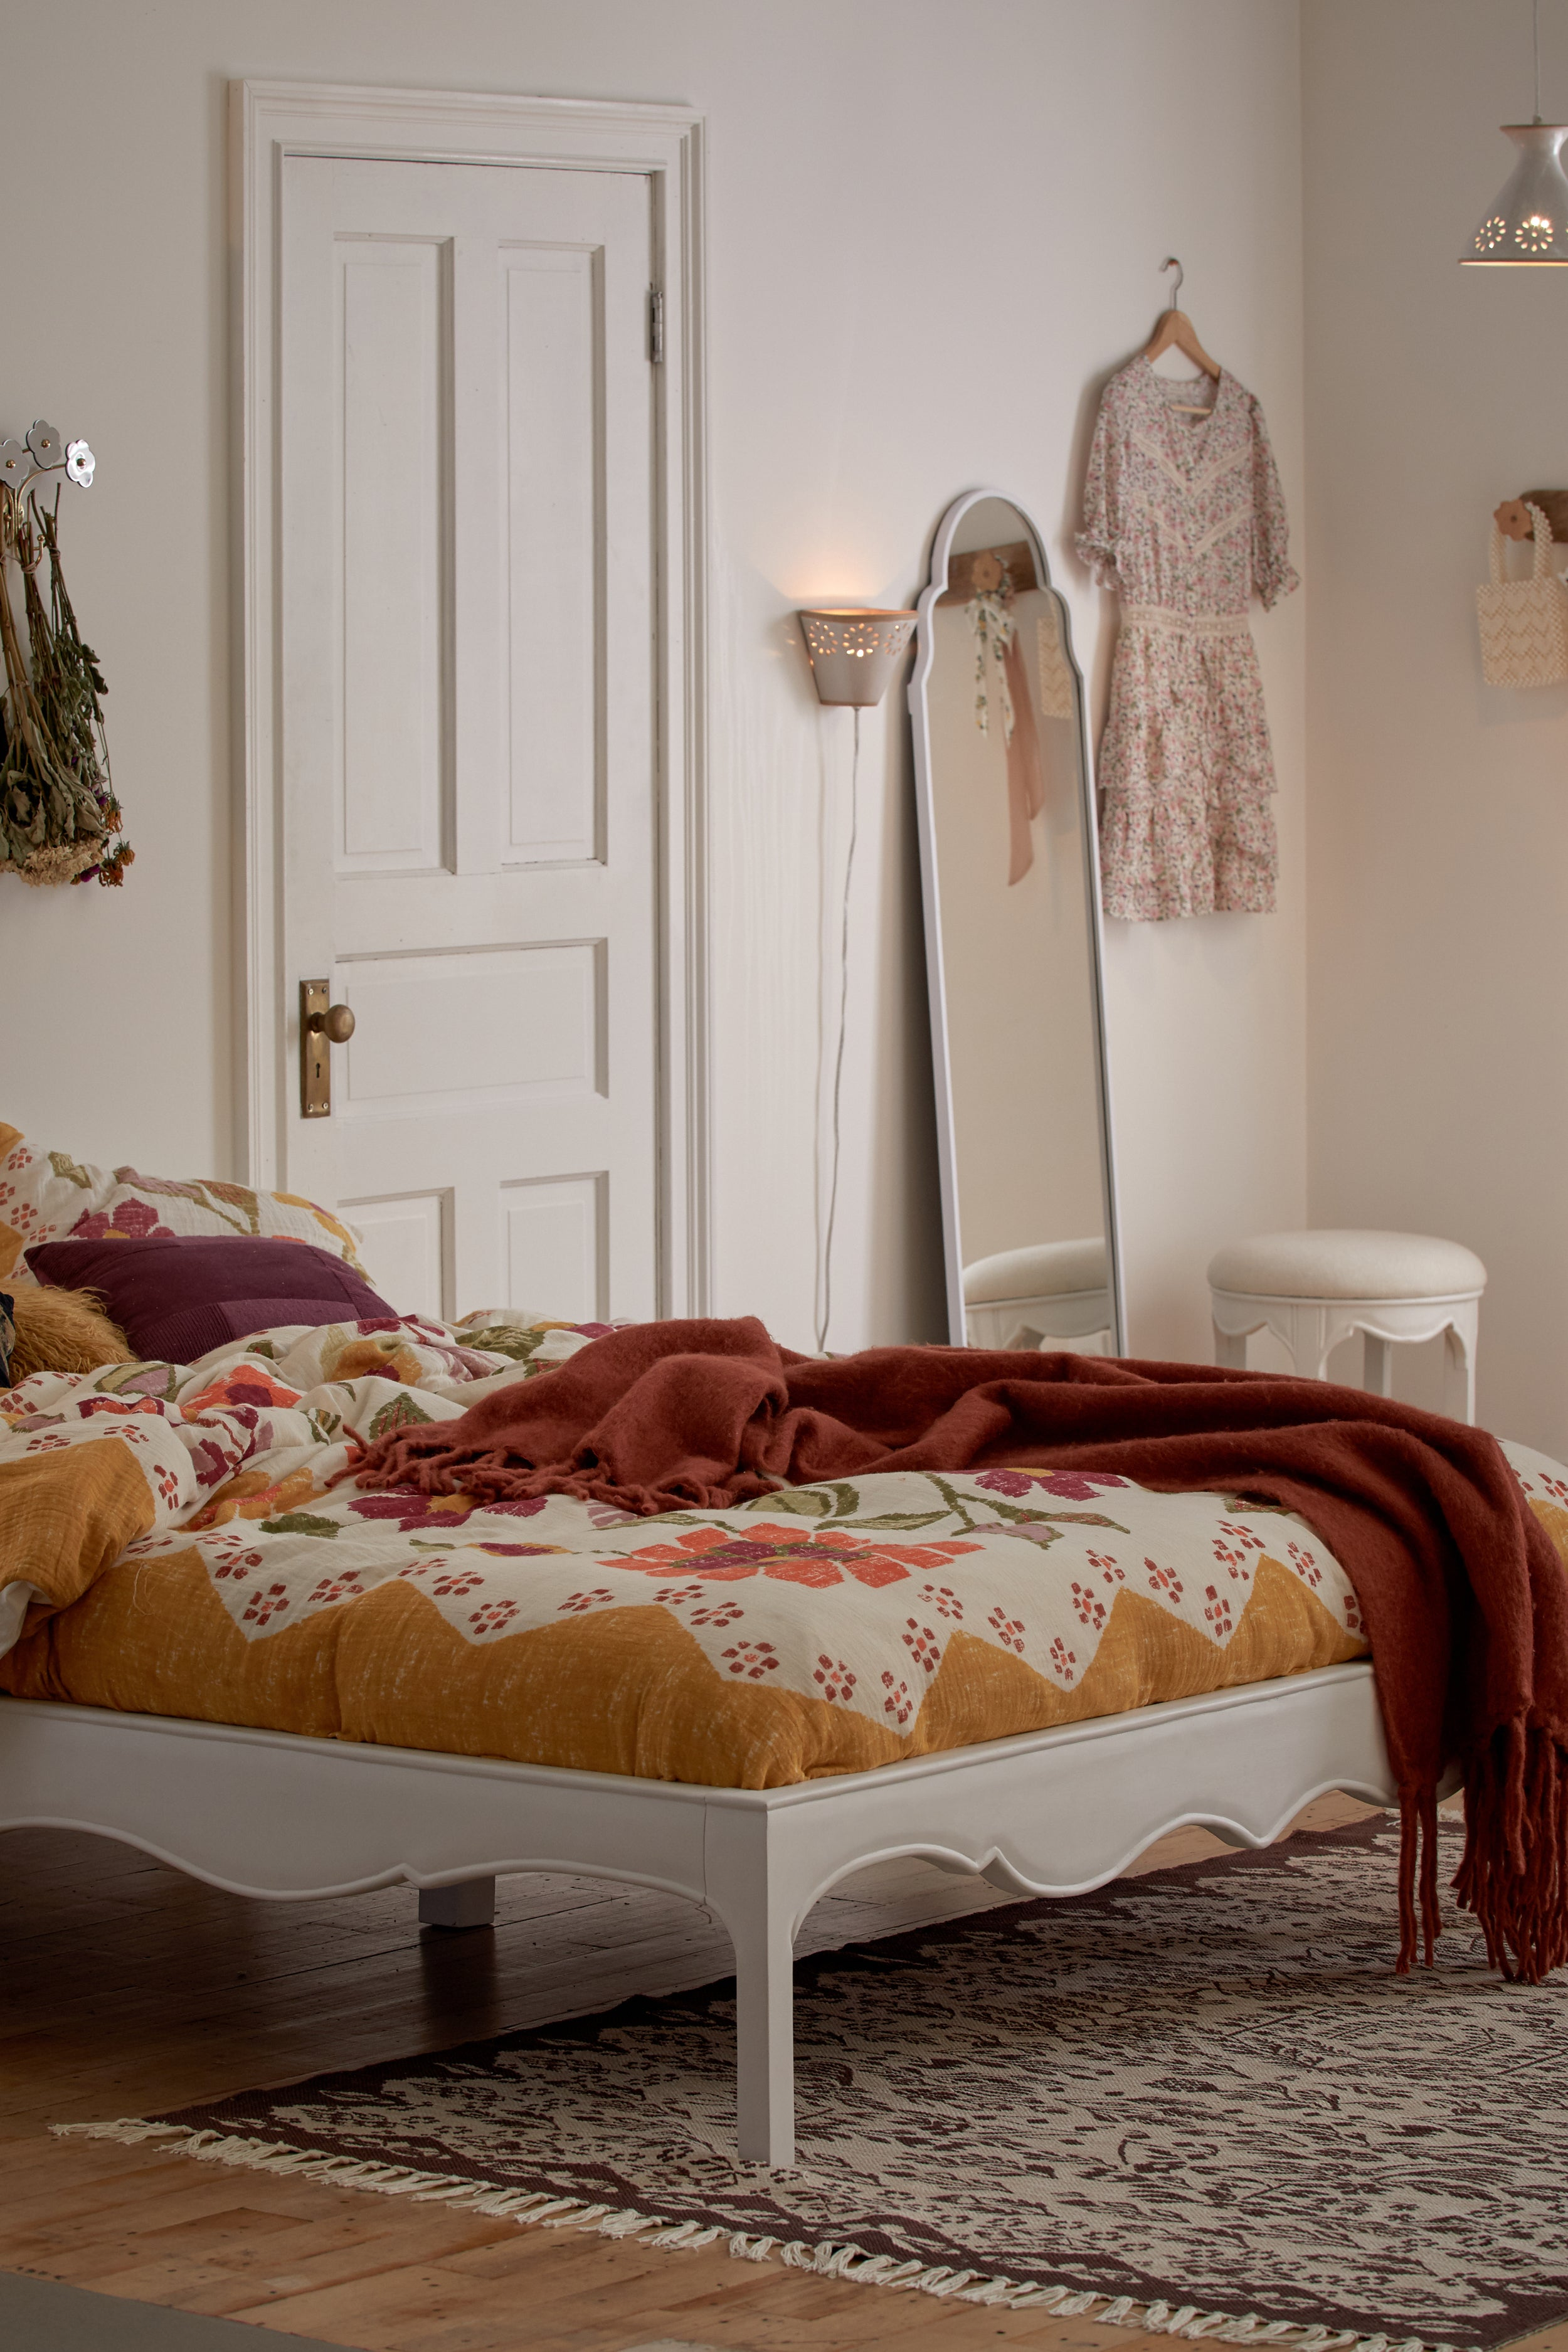 white bed with yellow sheets and red blanket